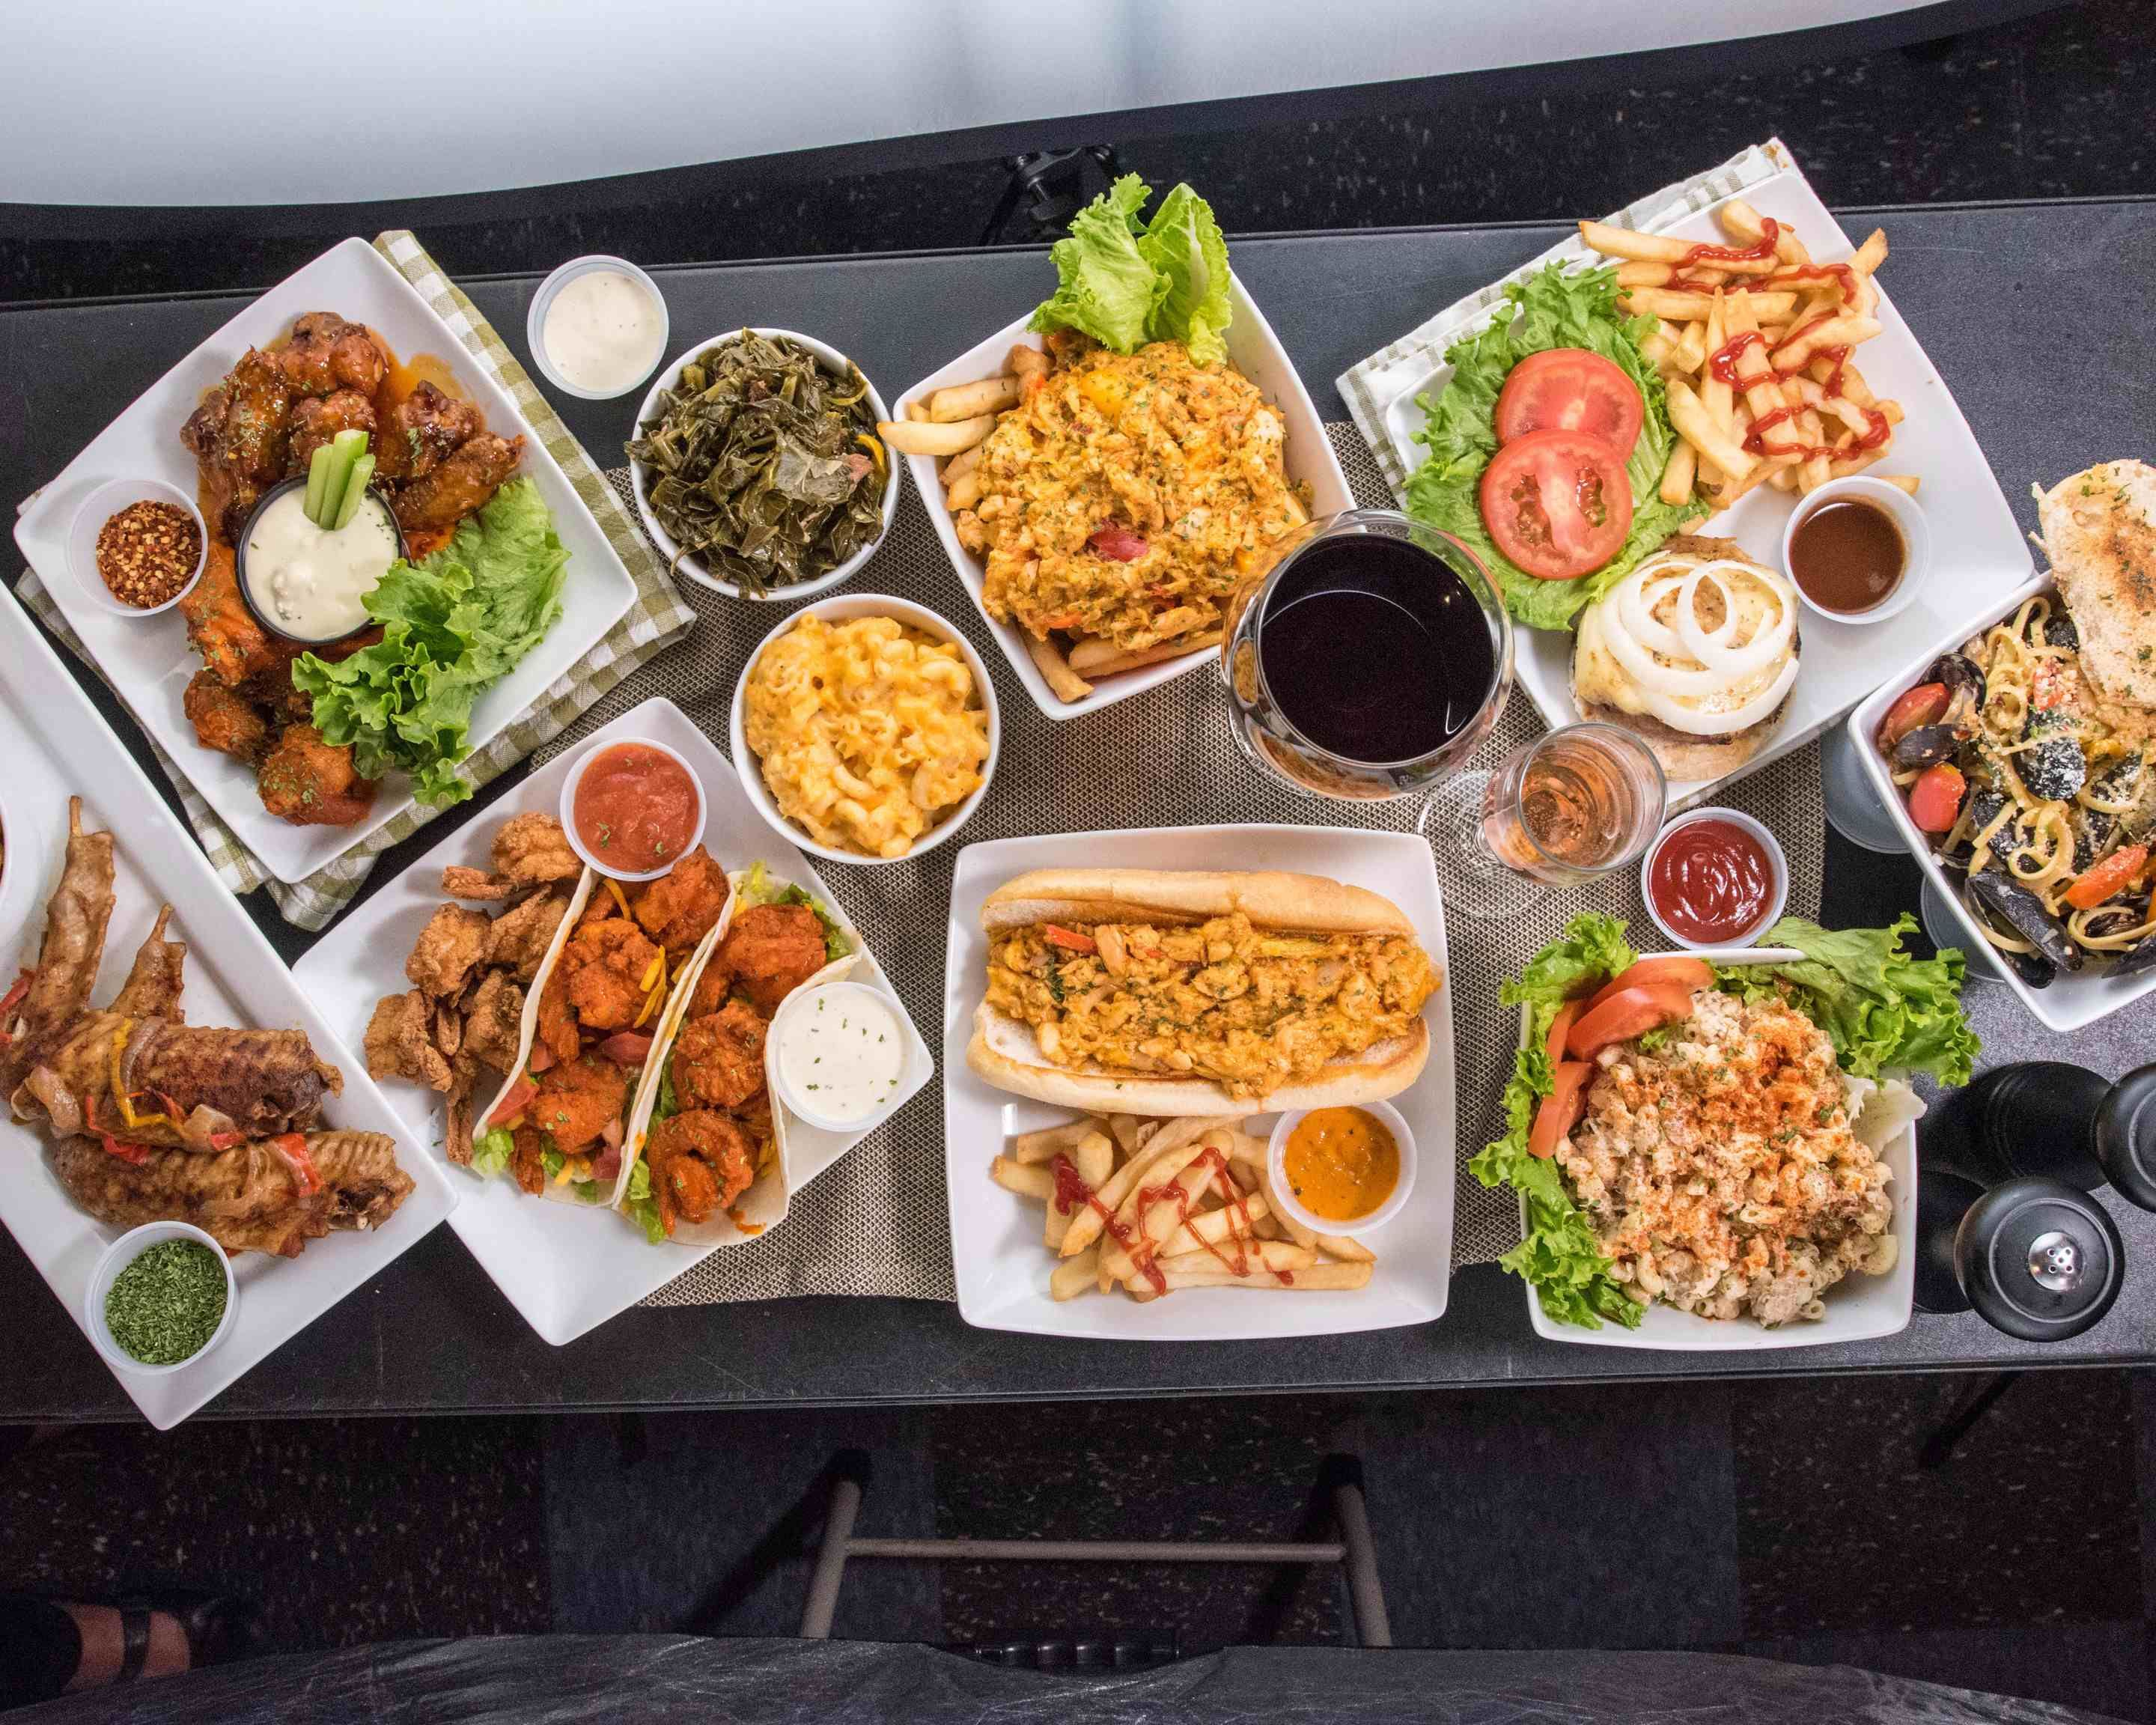 Tashias cocktails and cuisine delivery uber eats